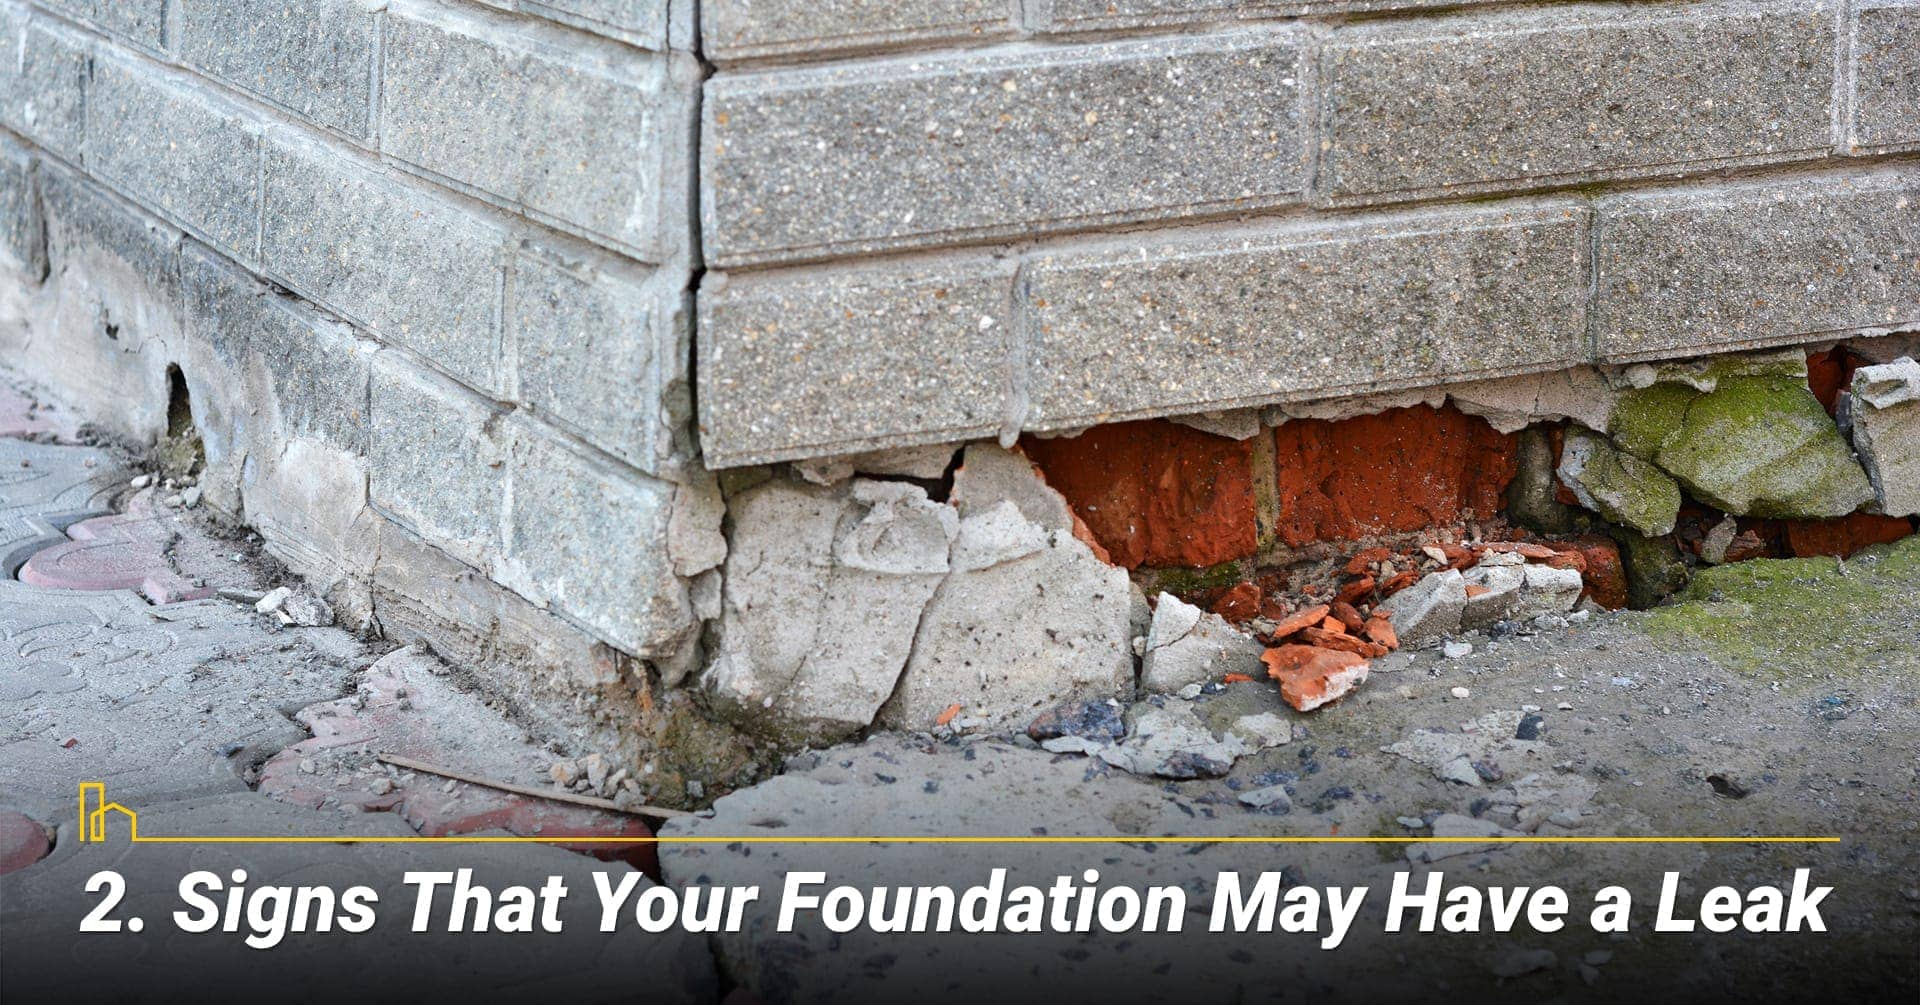 Signs That Your Foundation May Have a Leak, deteriorated external walls